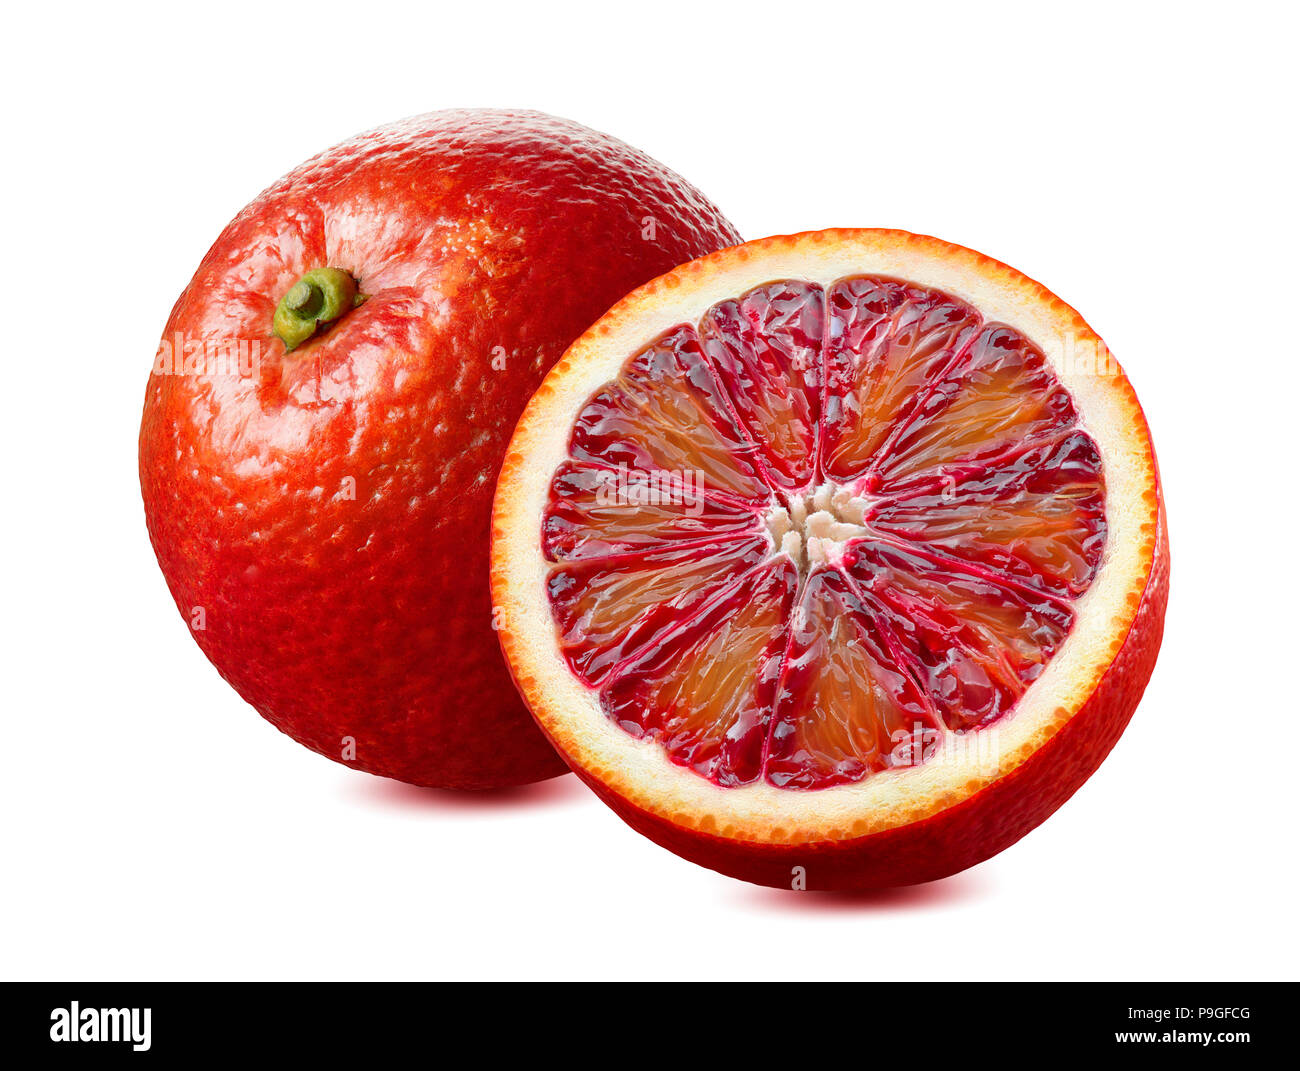 Whole red blood orange and half isolated on white background as package design element - Stock Image